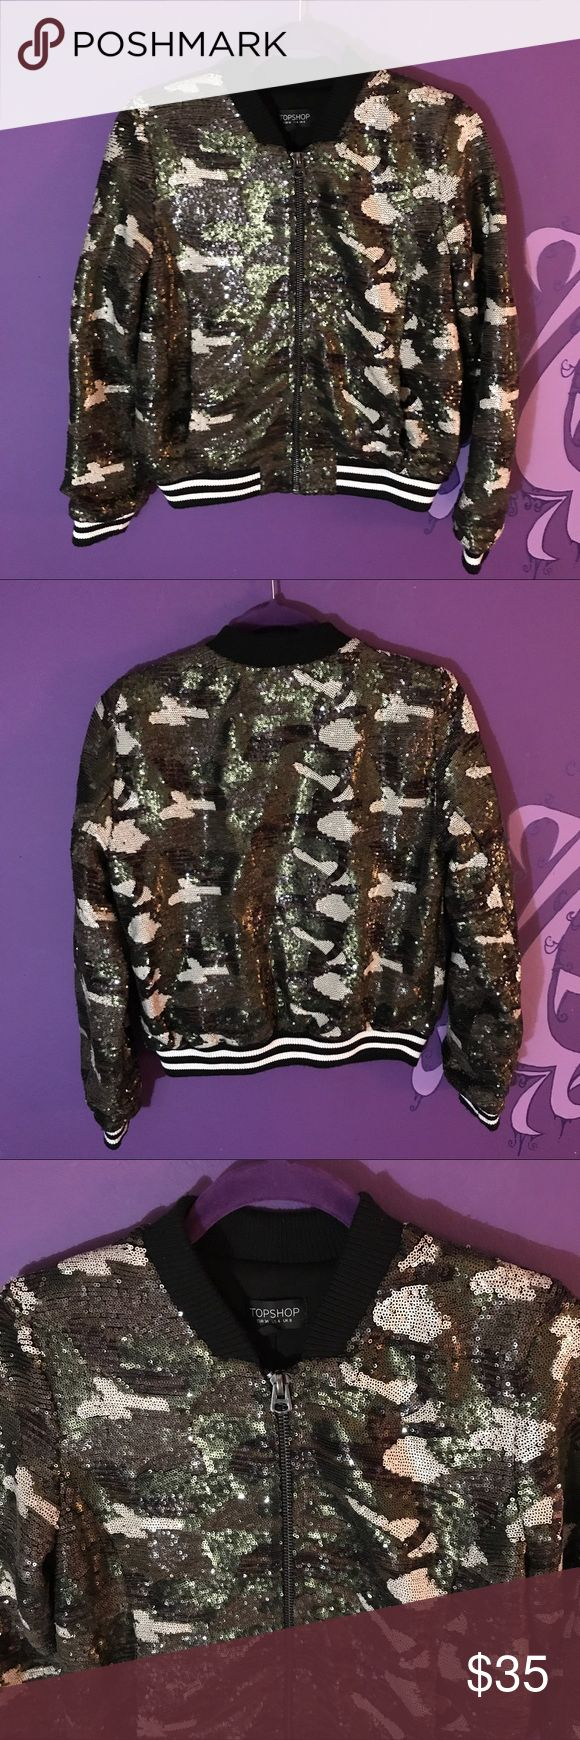 Camouflage Sequins track jacket size 4 topshop Another piece from Topshop. Sequins camouflage jacket. Perfect condition. Look supaflyy in this one. Size 4!   LINK IN BIO!!! #topshop #jacket #camouflage #sequins #trackjacket #coat #womensfashion #womensclothing #luxury #expensive #forsale #depop #poshmark #ebay #size4 #glitter Topshop Jackets & Coats